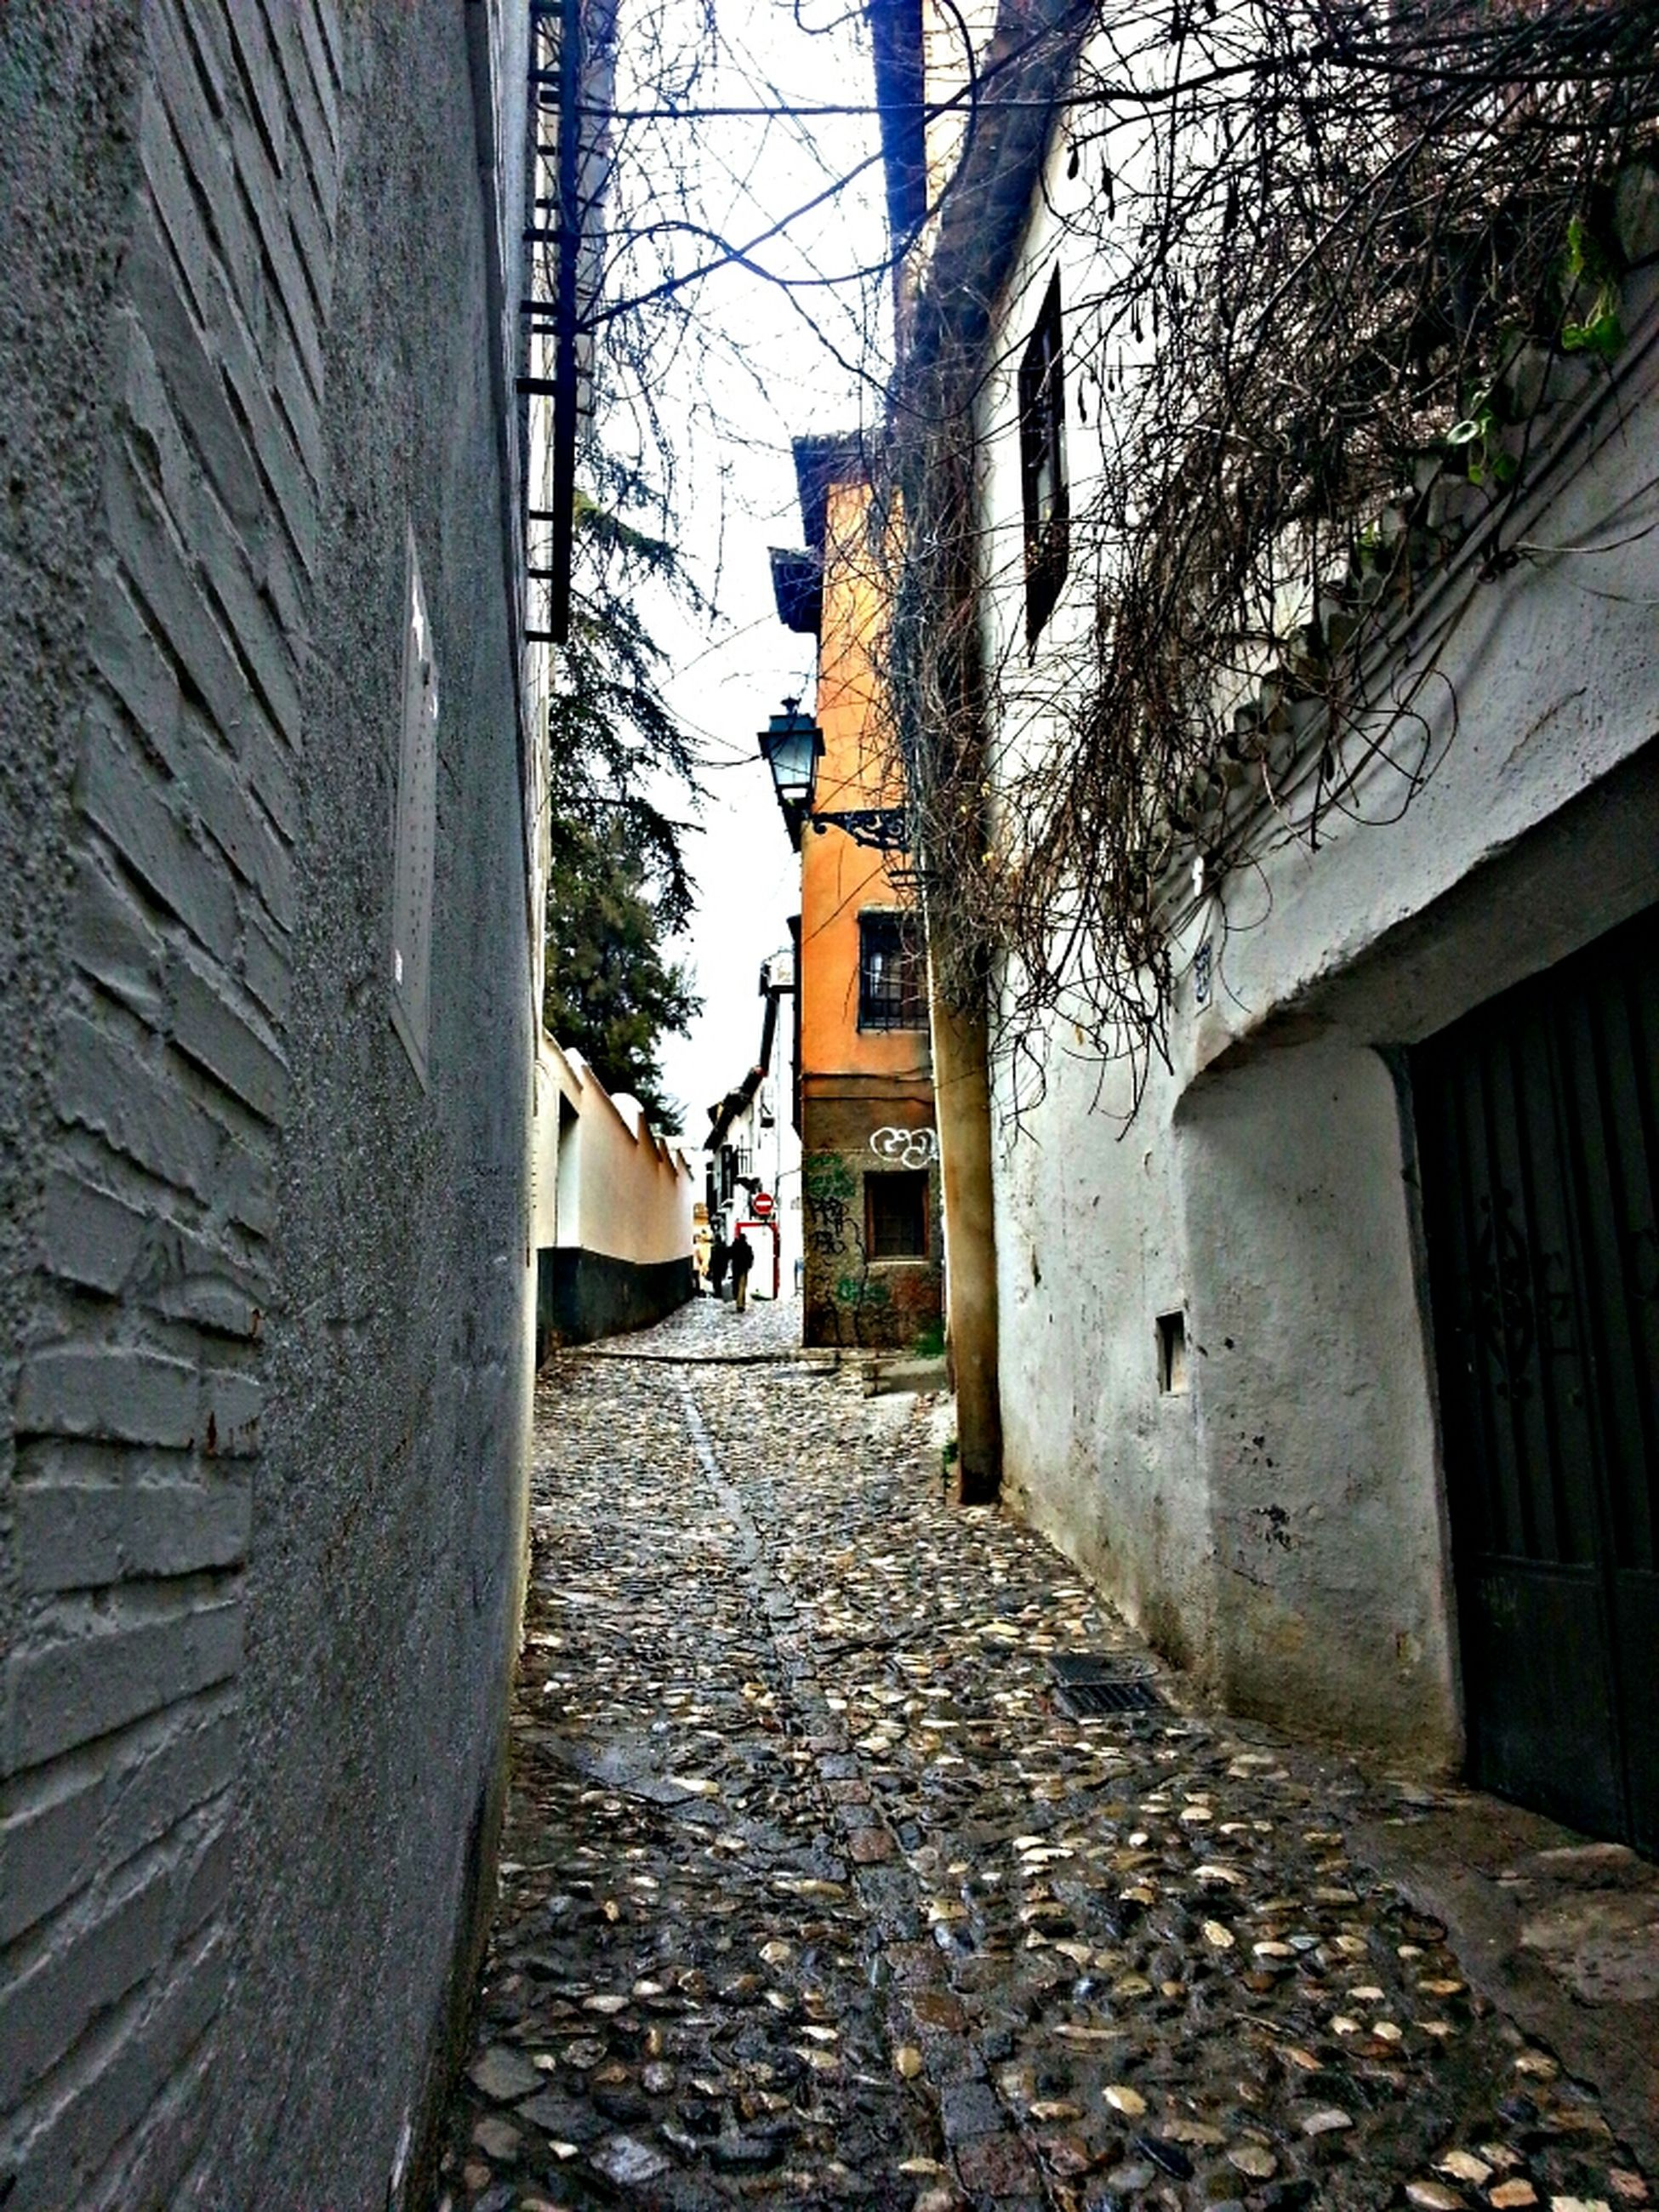 architecture, building exterior, built structure, the way forward, house, alley, residential structure, residential building, narrow, diminishing perspective, building, cobblestone, street, old, day, tree, vanishing point, pathway, outdoors, walkway